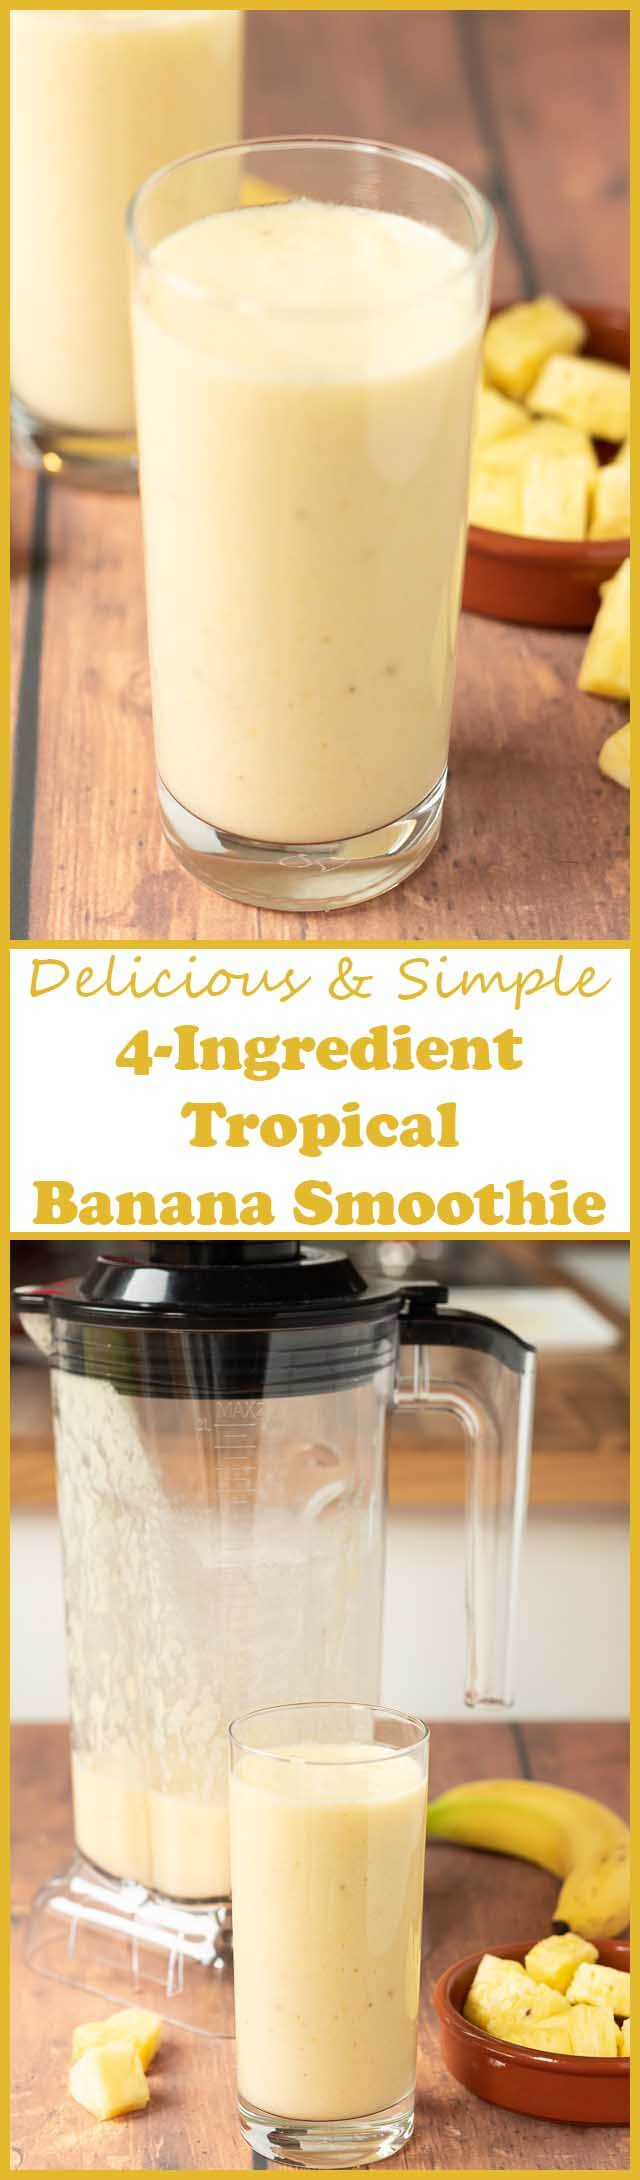 4-ingredient tropical banana smoothie not only tastes amazing but takes just five minutes to make. With a delicious creamy texture it's not only refreshing but also revitalising and rejuvenating. Start your day with a ray of sunshine thanks to this healthy banana smoothie recipe!